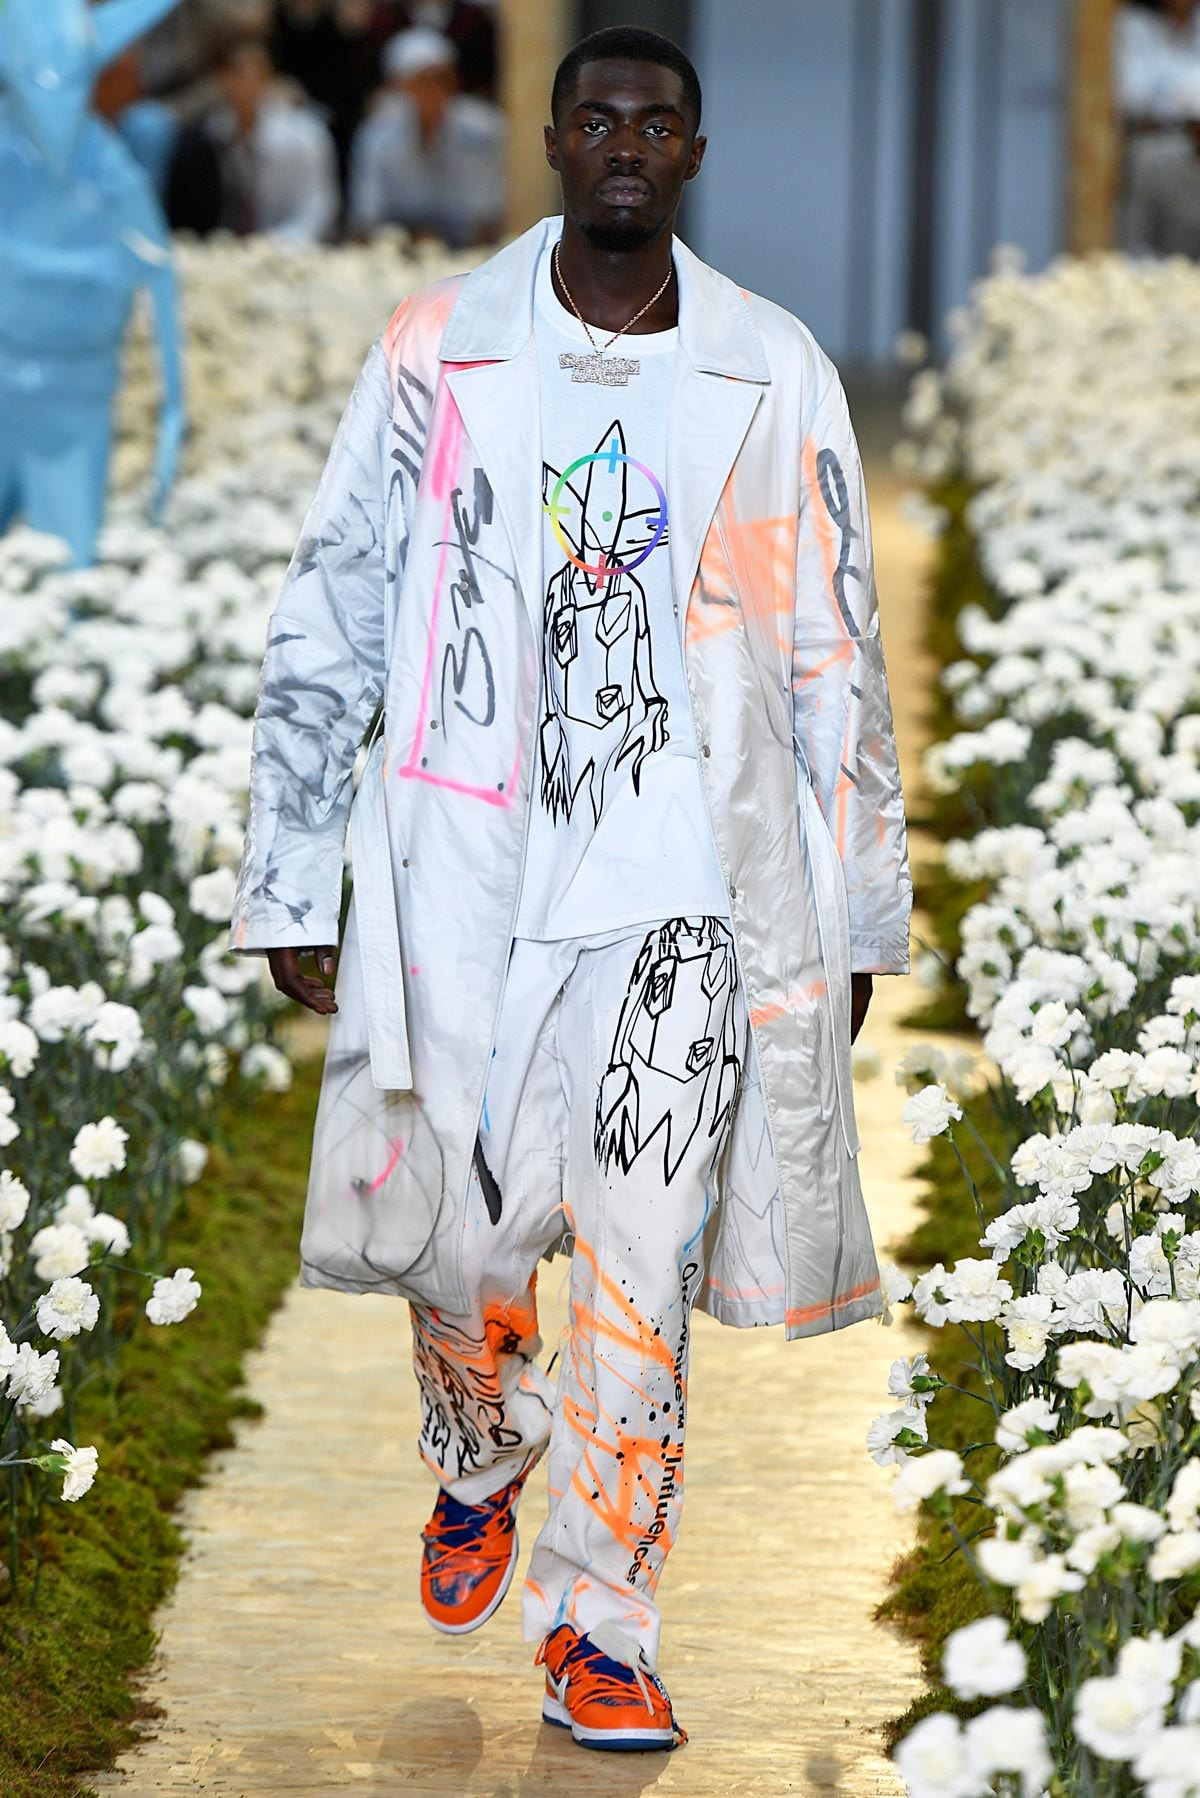 Contre-culture et mode durable : le streetwear chic de Off-White par Virgil Abloh